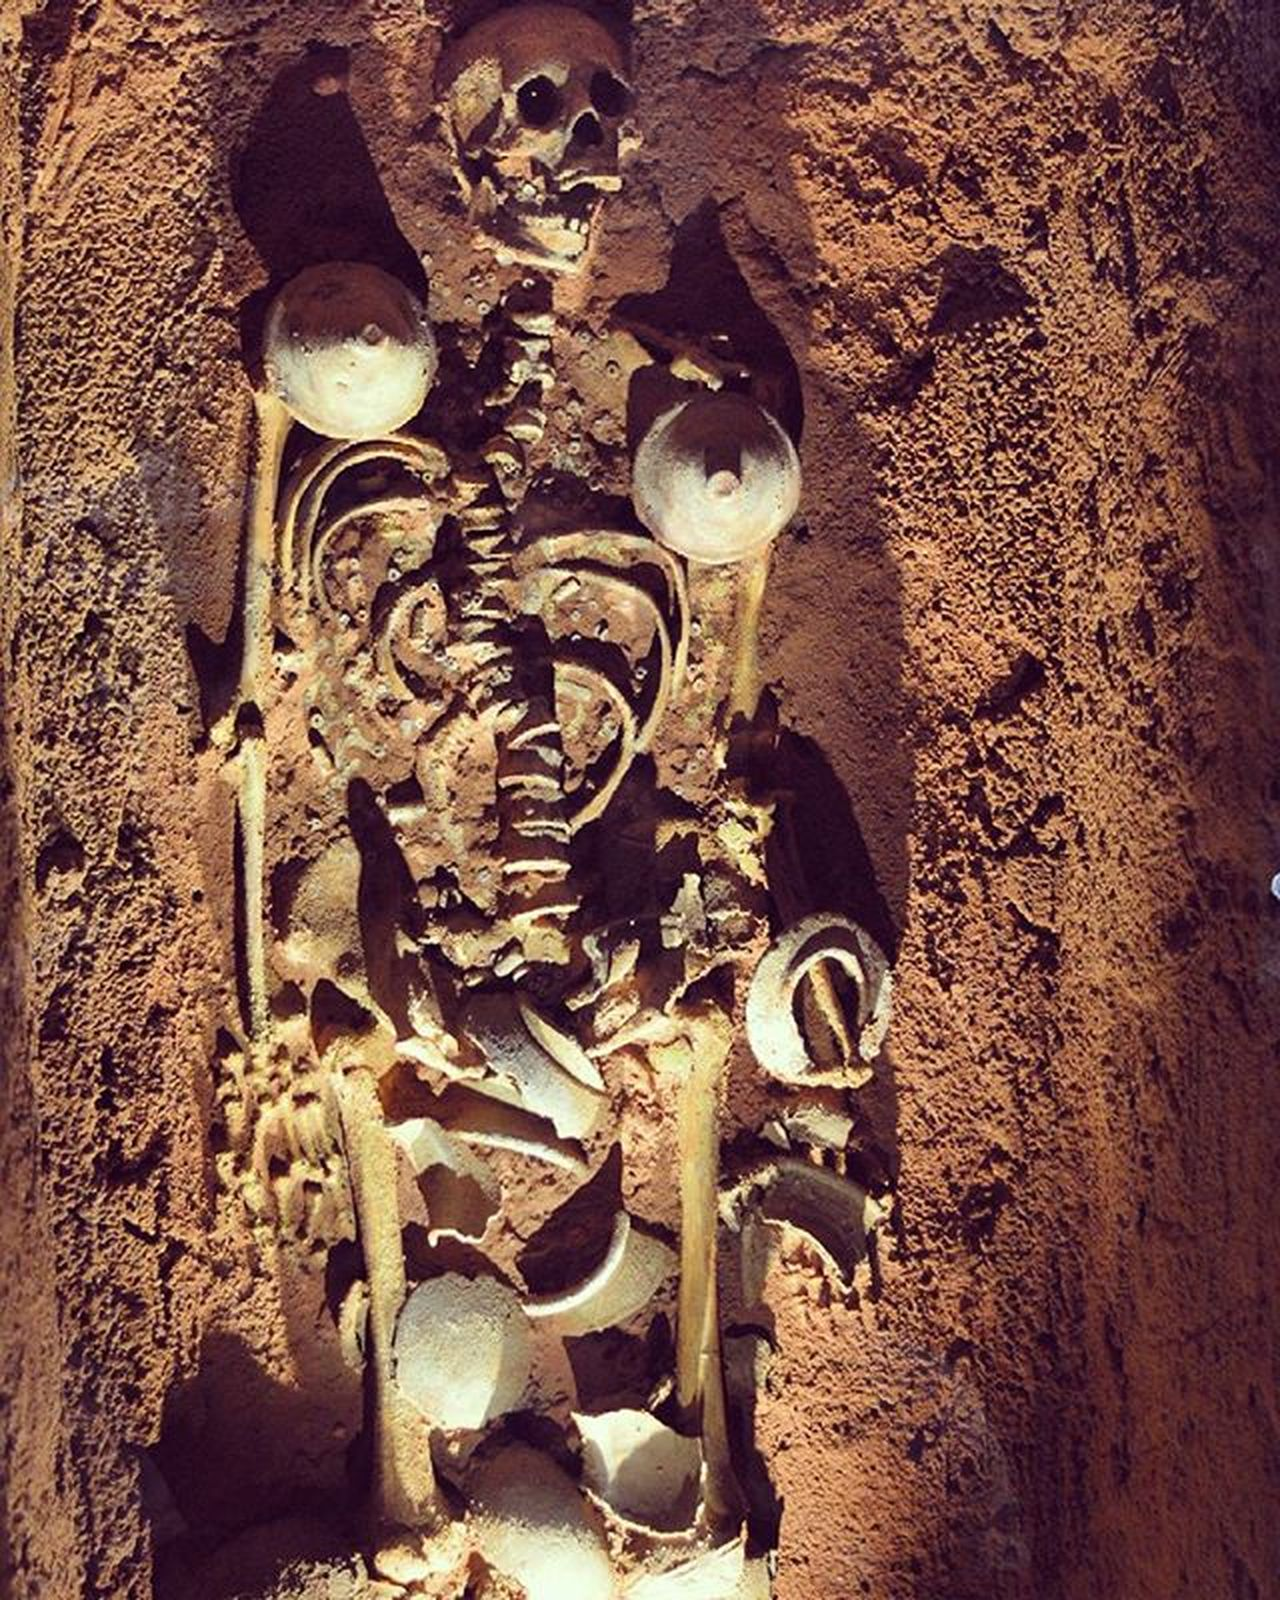 Skeleton Bone  Bones Scary Halloween Hountedhouse Hounted Ghost Ghosts Art ArtWork Museum Museums Human Humans Skull Skulls Cave Old Olddays Man